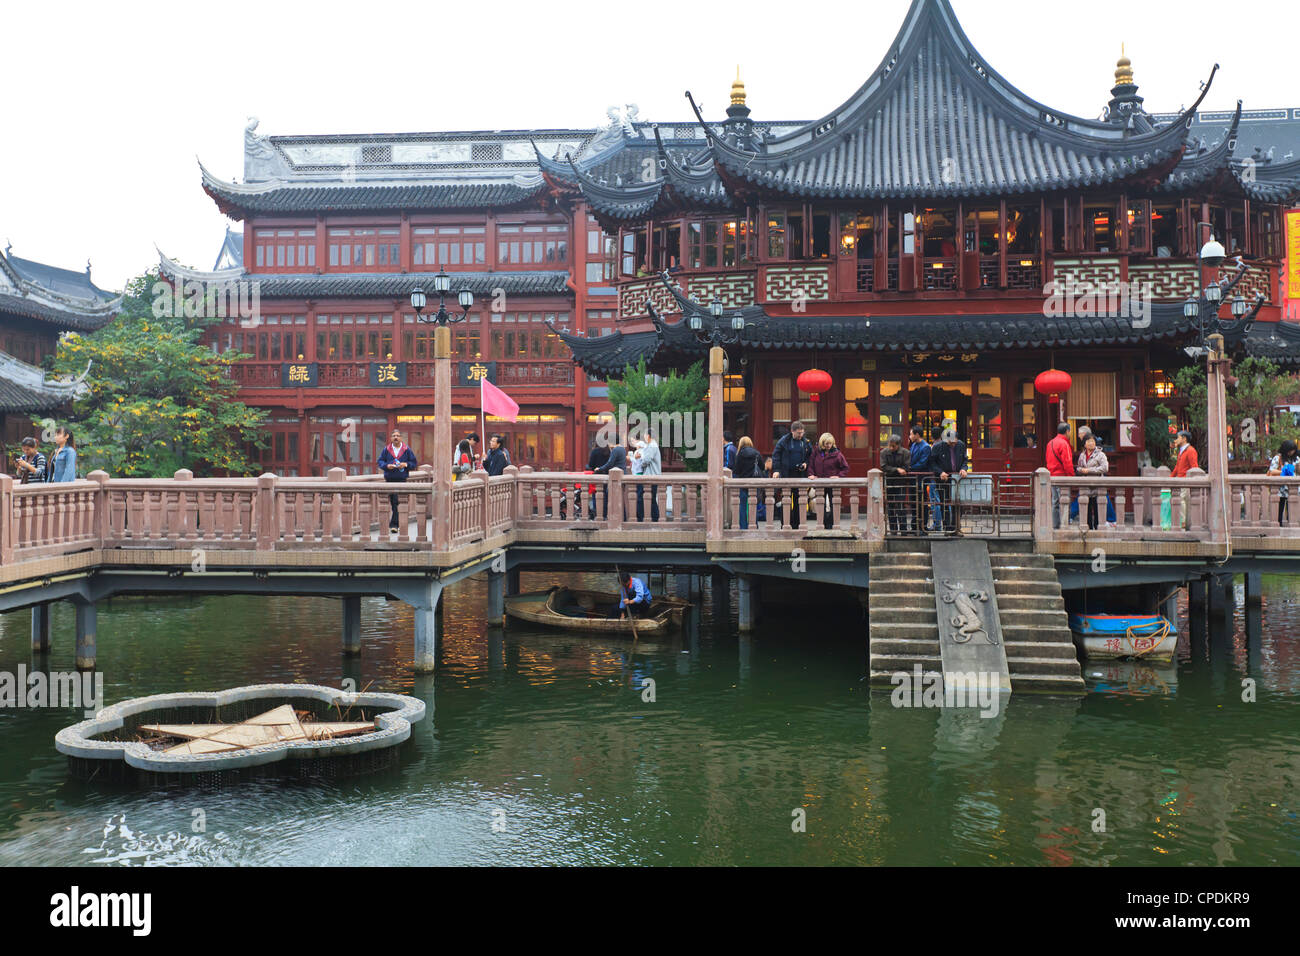 Hu Xing Ting Teahouse And Zigzag Bridge Of Nine Turnings, Yu Yuan (Yuyuan)  Bazaar, Shanghai, China, Asia